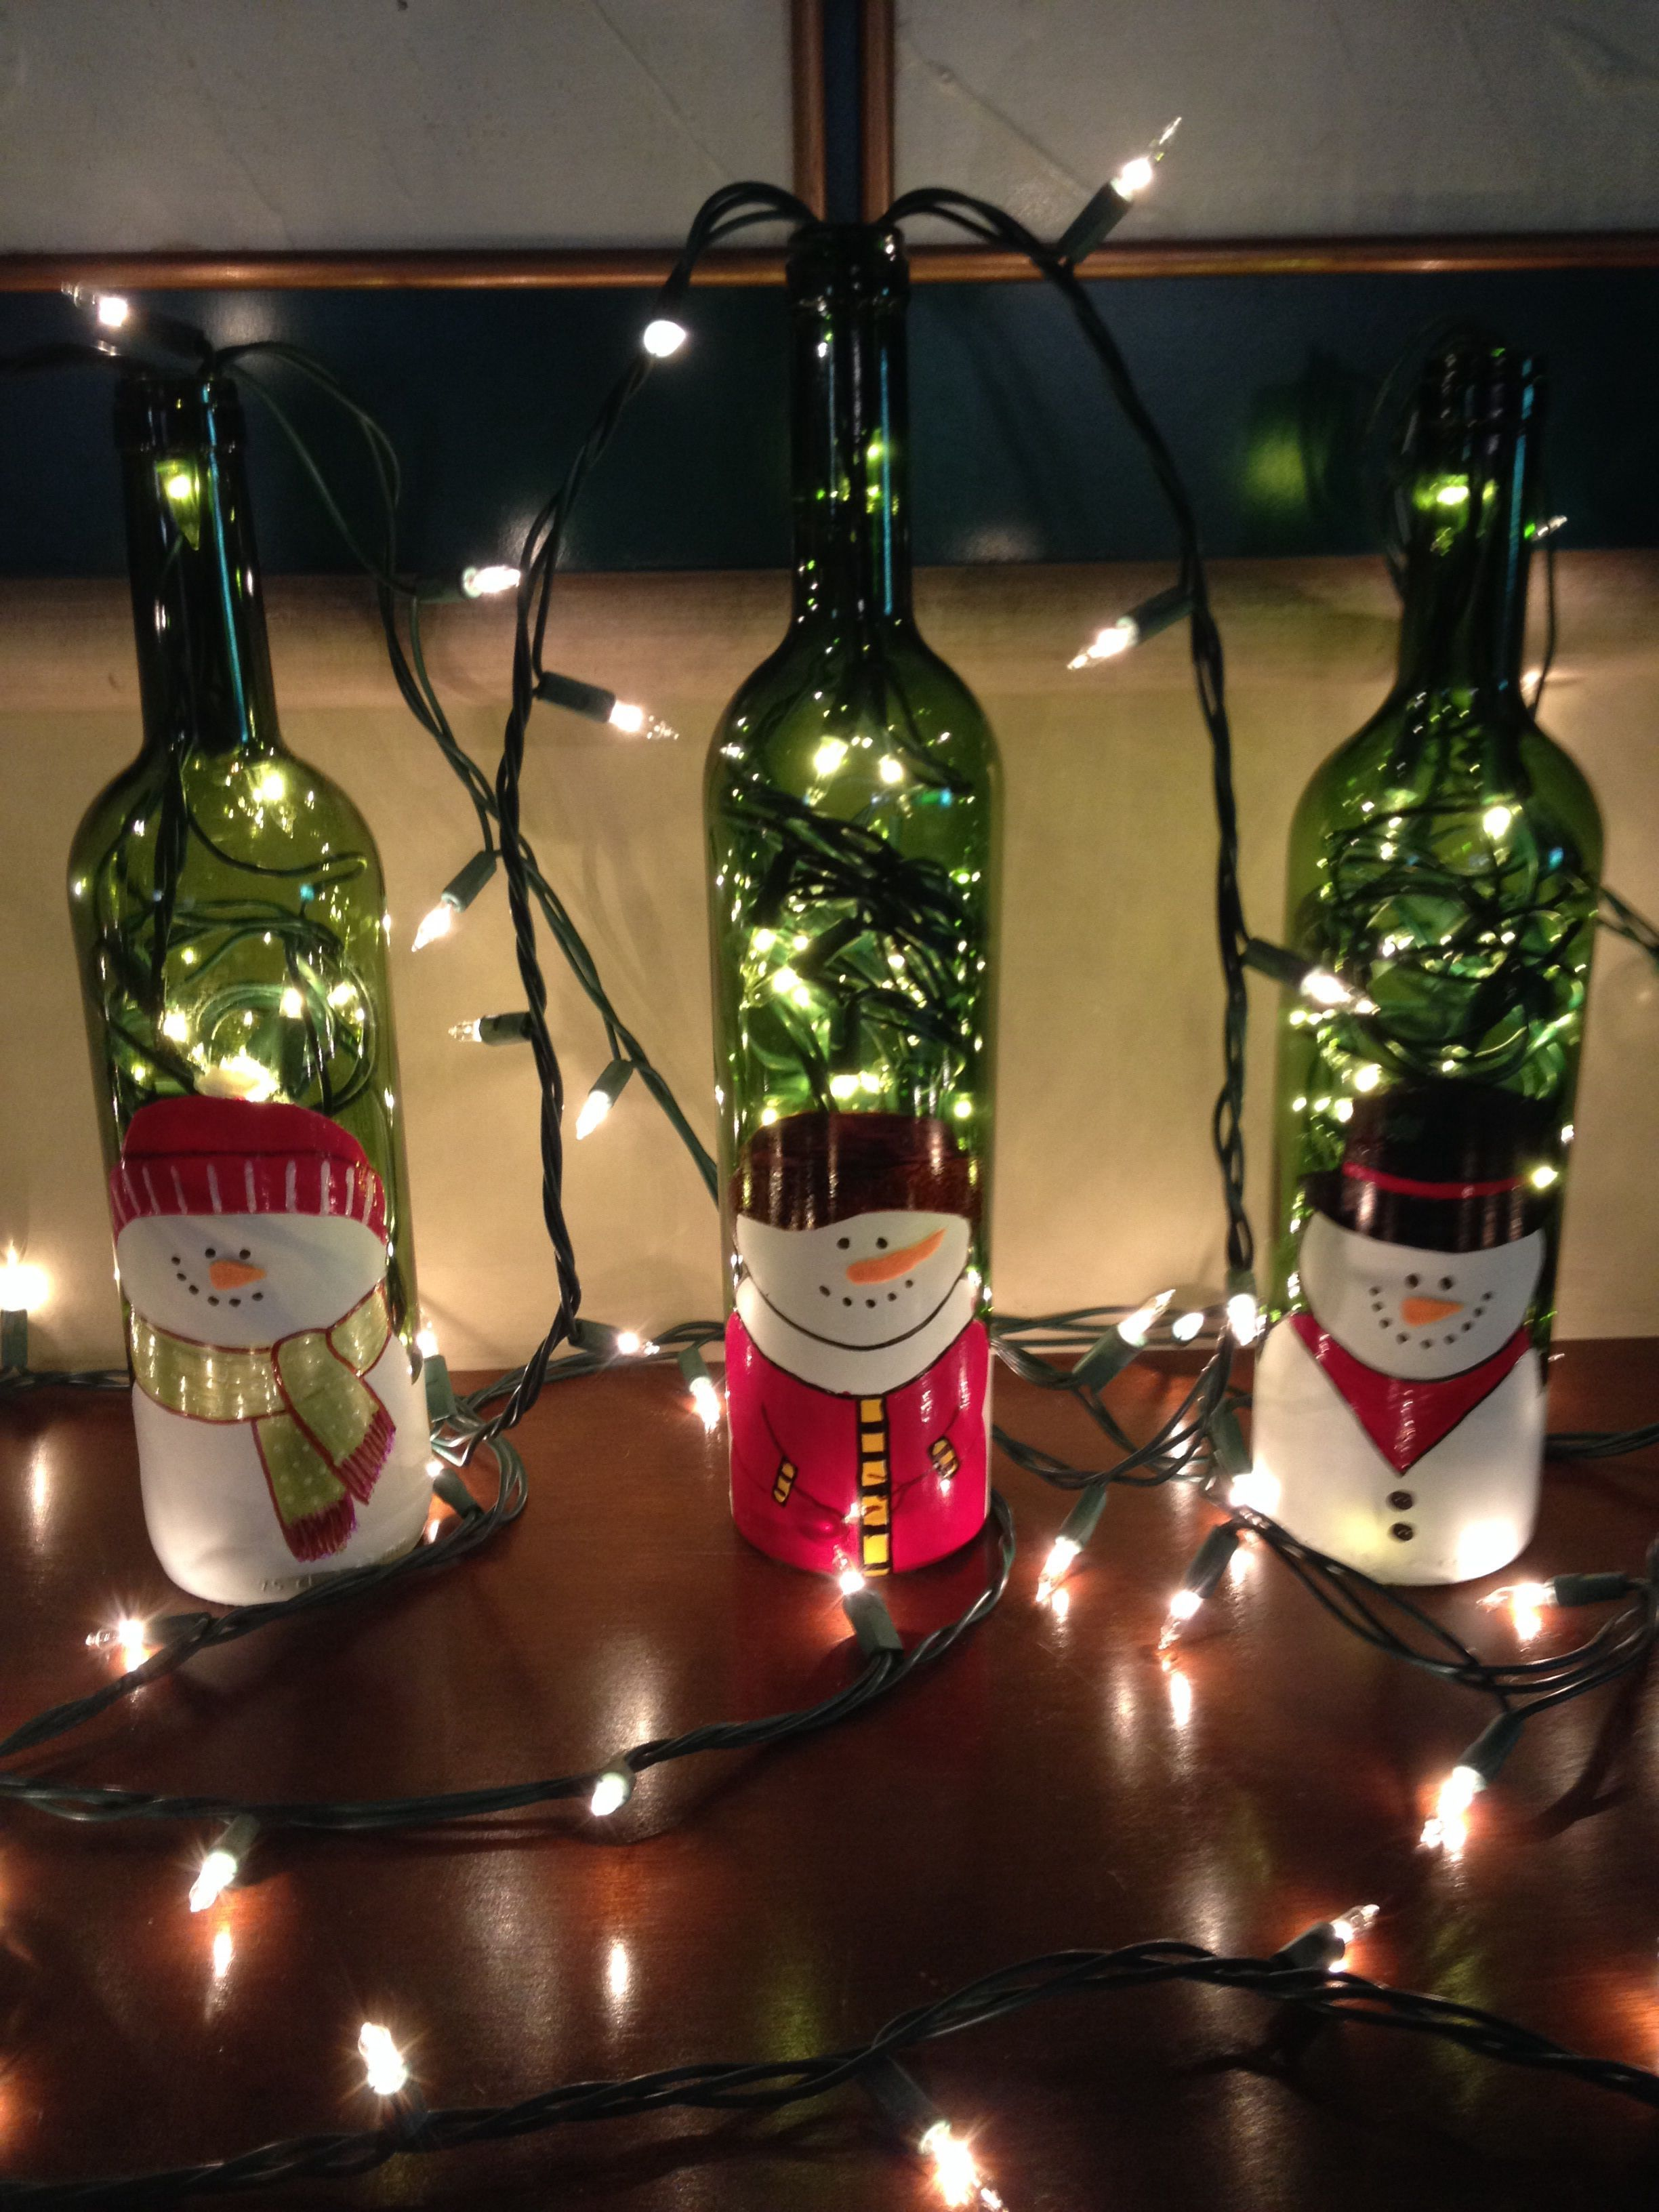 Reciclando botellas de vino para decorar christmas - Adornos navidenos con botellas ...